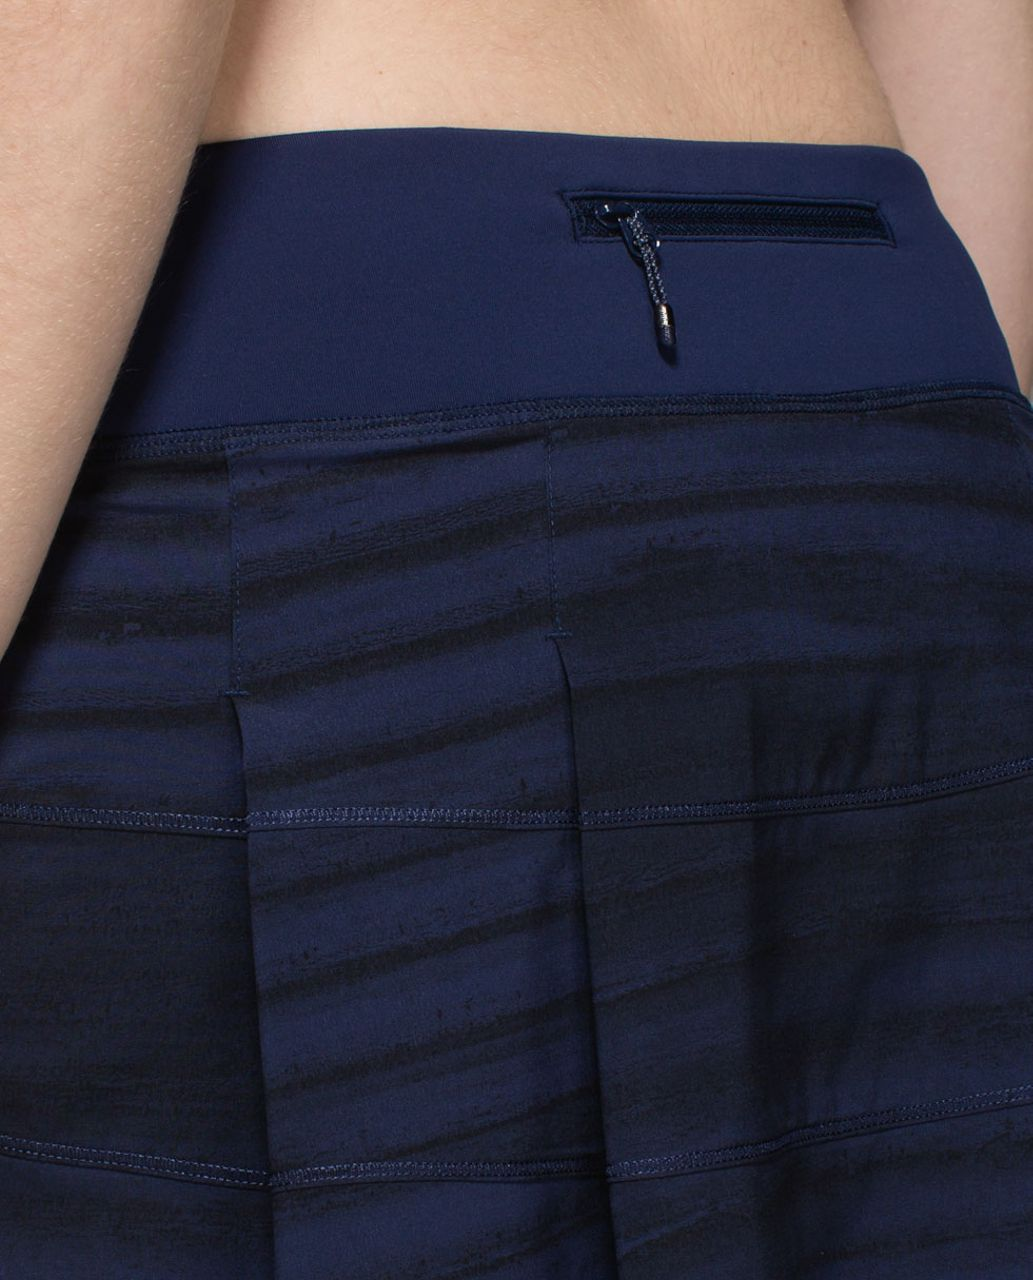 Lululemon Pace Rival Skirt II *4-way Stretch (Regular) - Good Vibes Deep Navy Black / Deep Navy